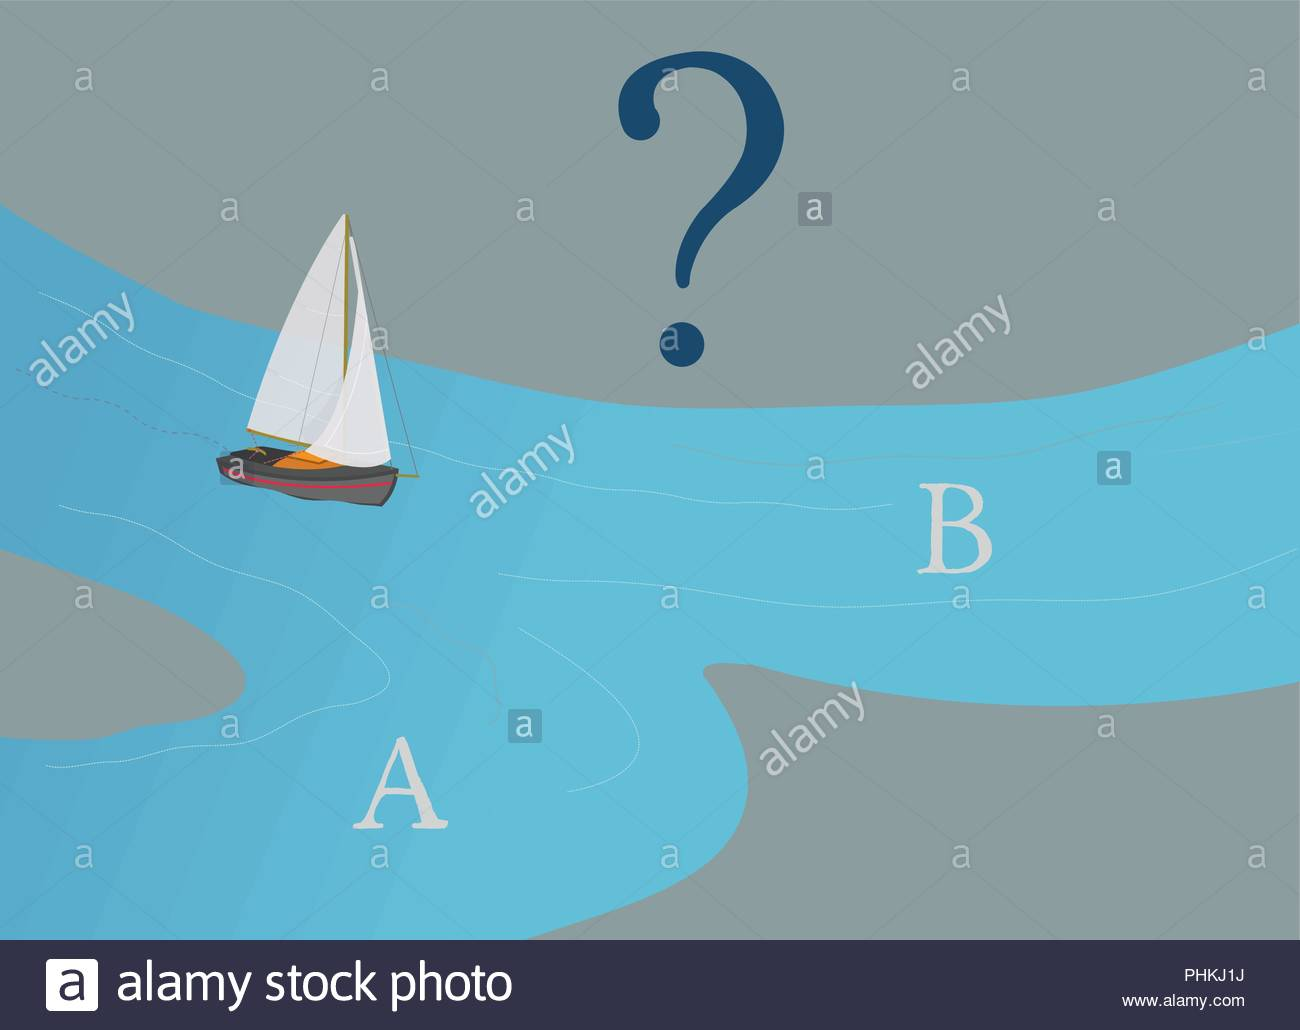 Sail Boat deciding which way to go, A or B?, Business Direction Concept, Question Mark, Decision Making, Illustration, Planning, Navigation Stock Vector